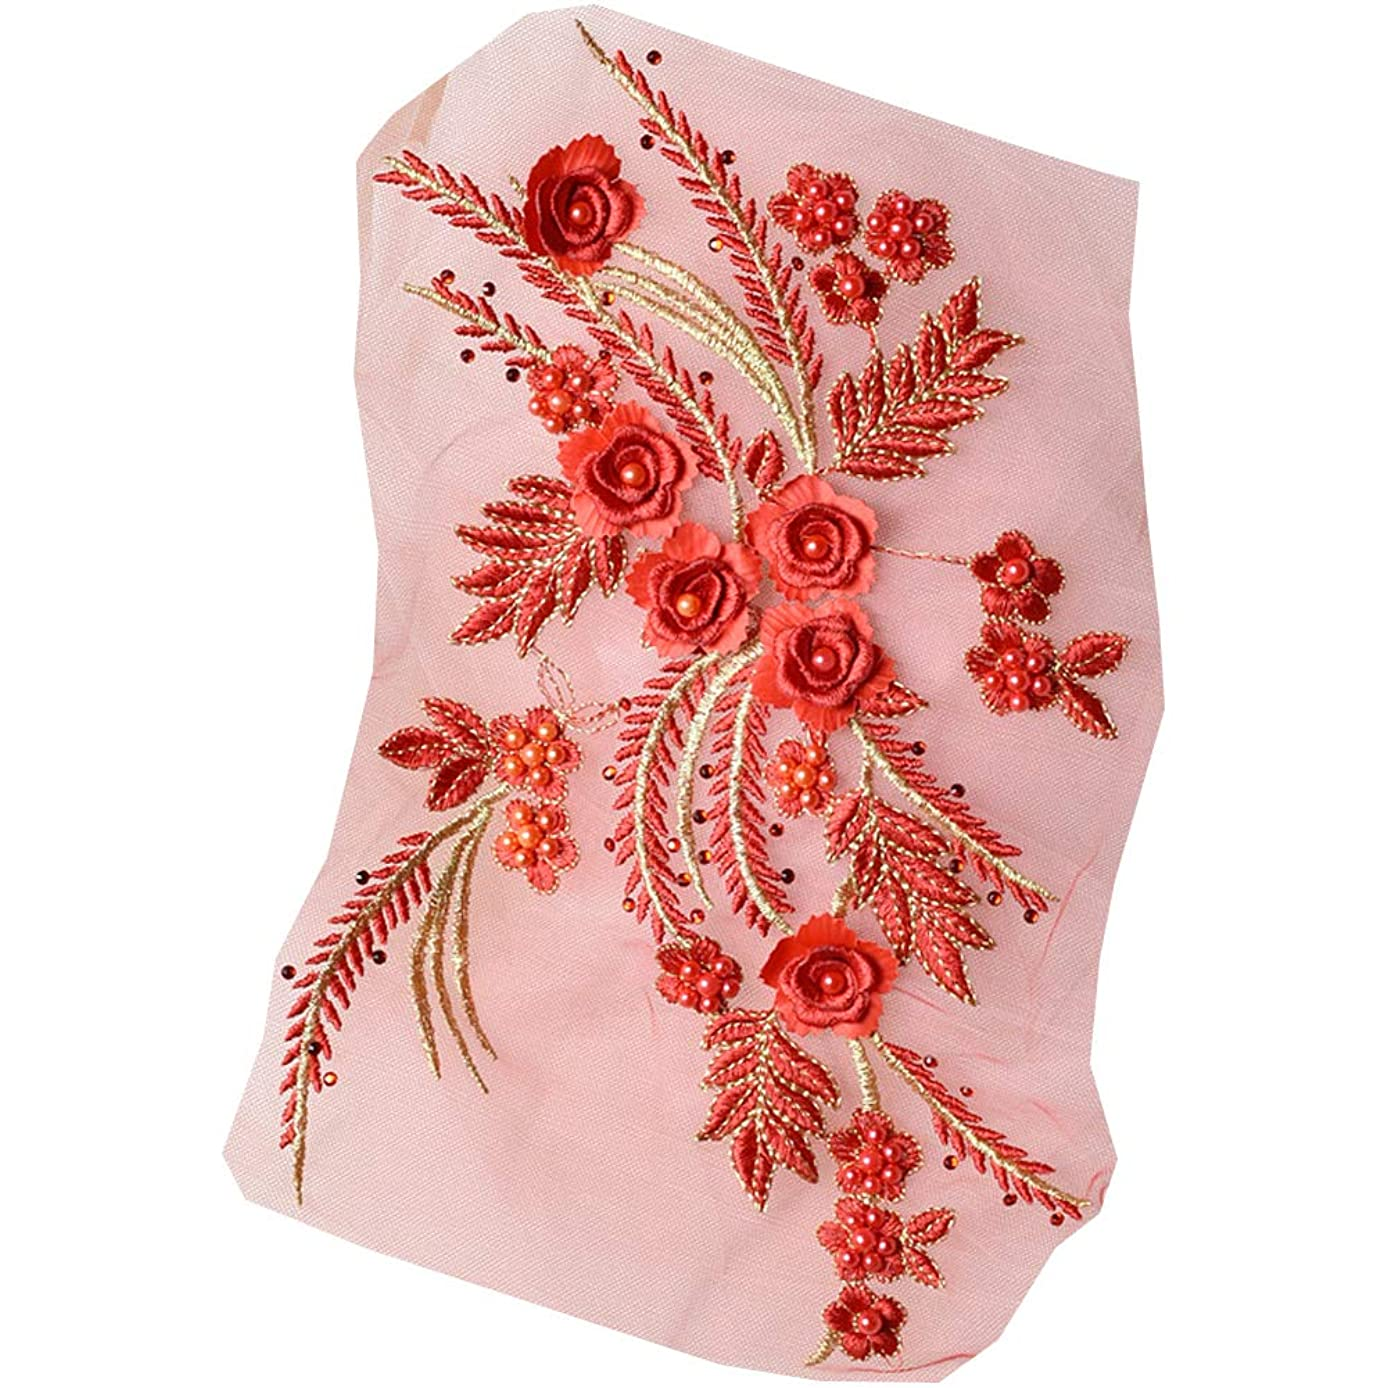 XUNHUI Red+Gold Exquisite Pearl Beaded 3D Flower Blossom Lace Applique for Dress Lace Patch 1 Piece